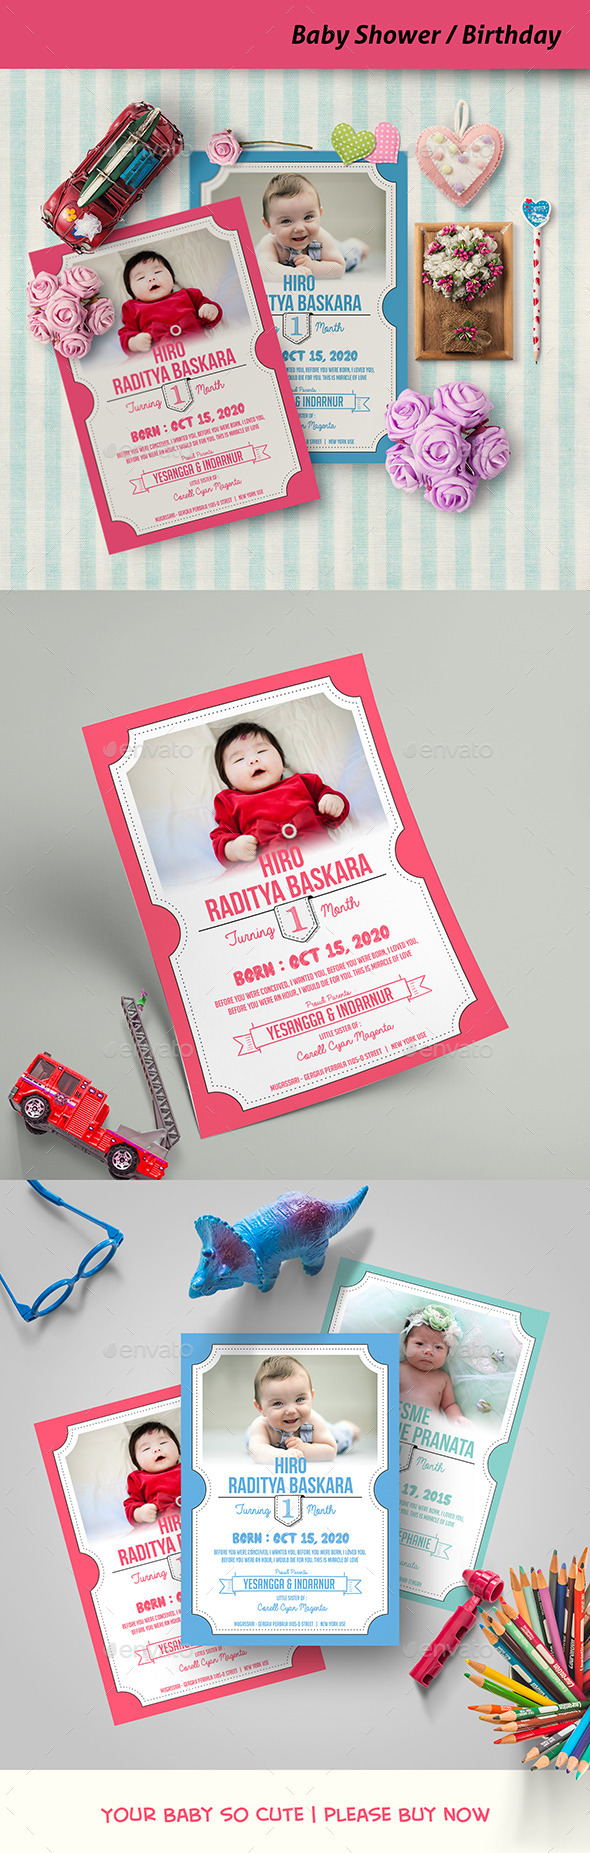 Baby Shower / Birthday Card - Family Cards & Invites